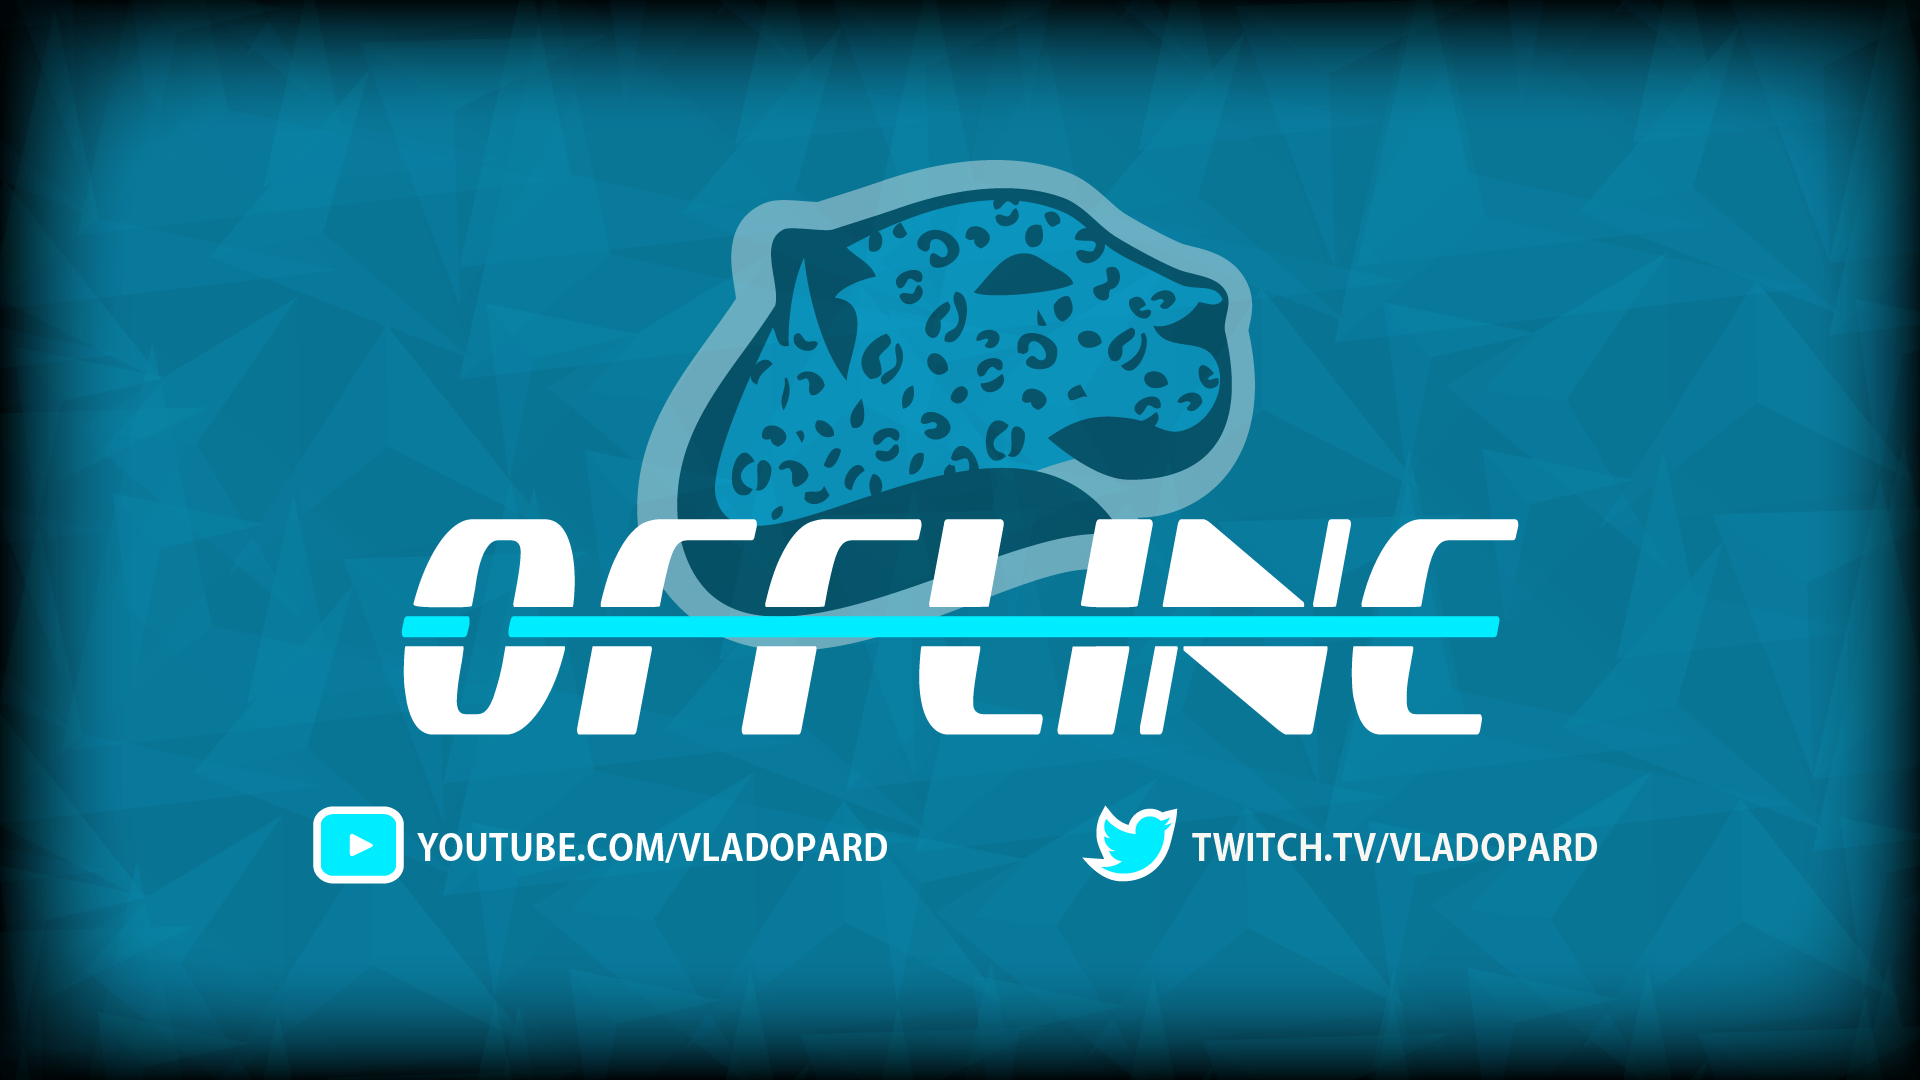 Valdopard Twitch Offline Screen